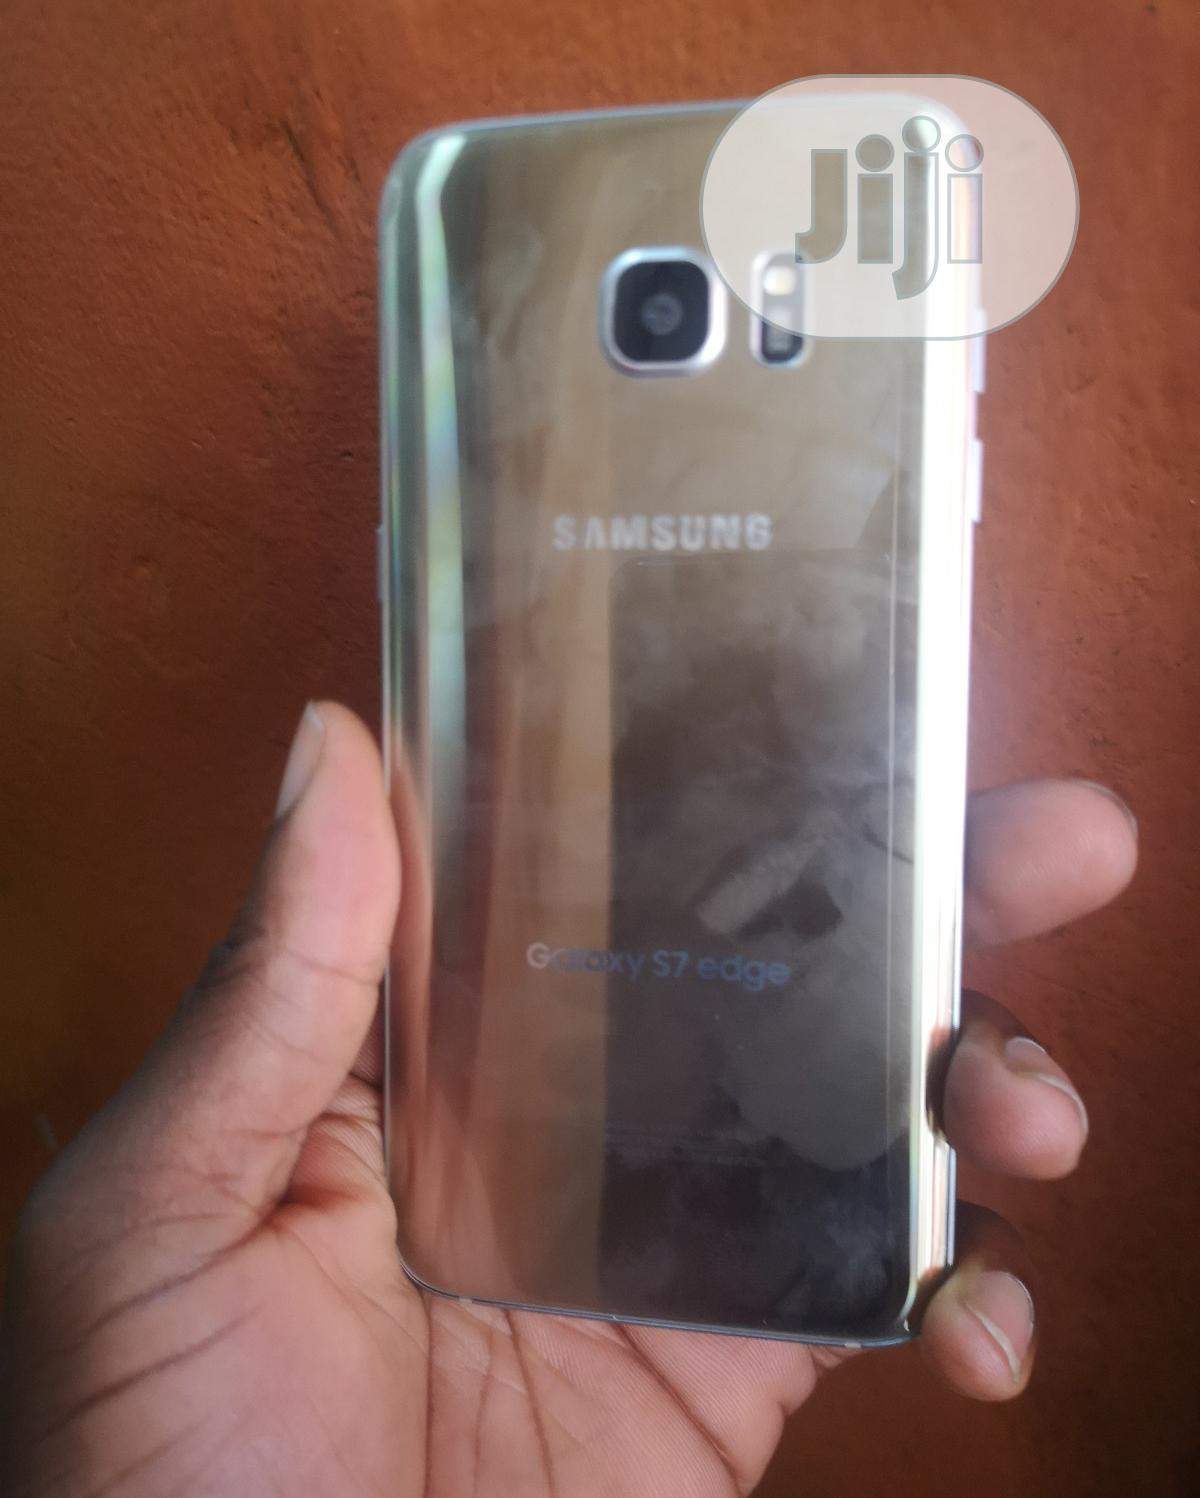 Samsung Galaxy S7 edge 32 GB Gold   Mobile Phones for sale in Yaba, Lagos State, Nigeria